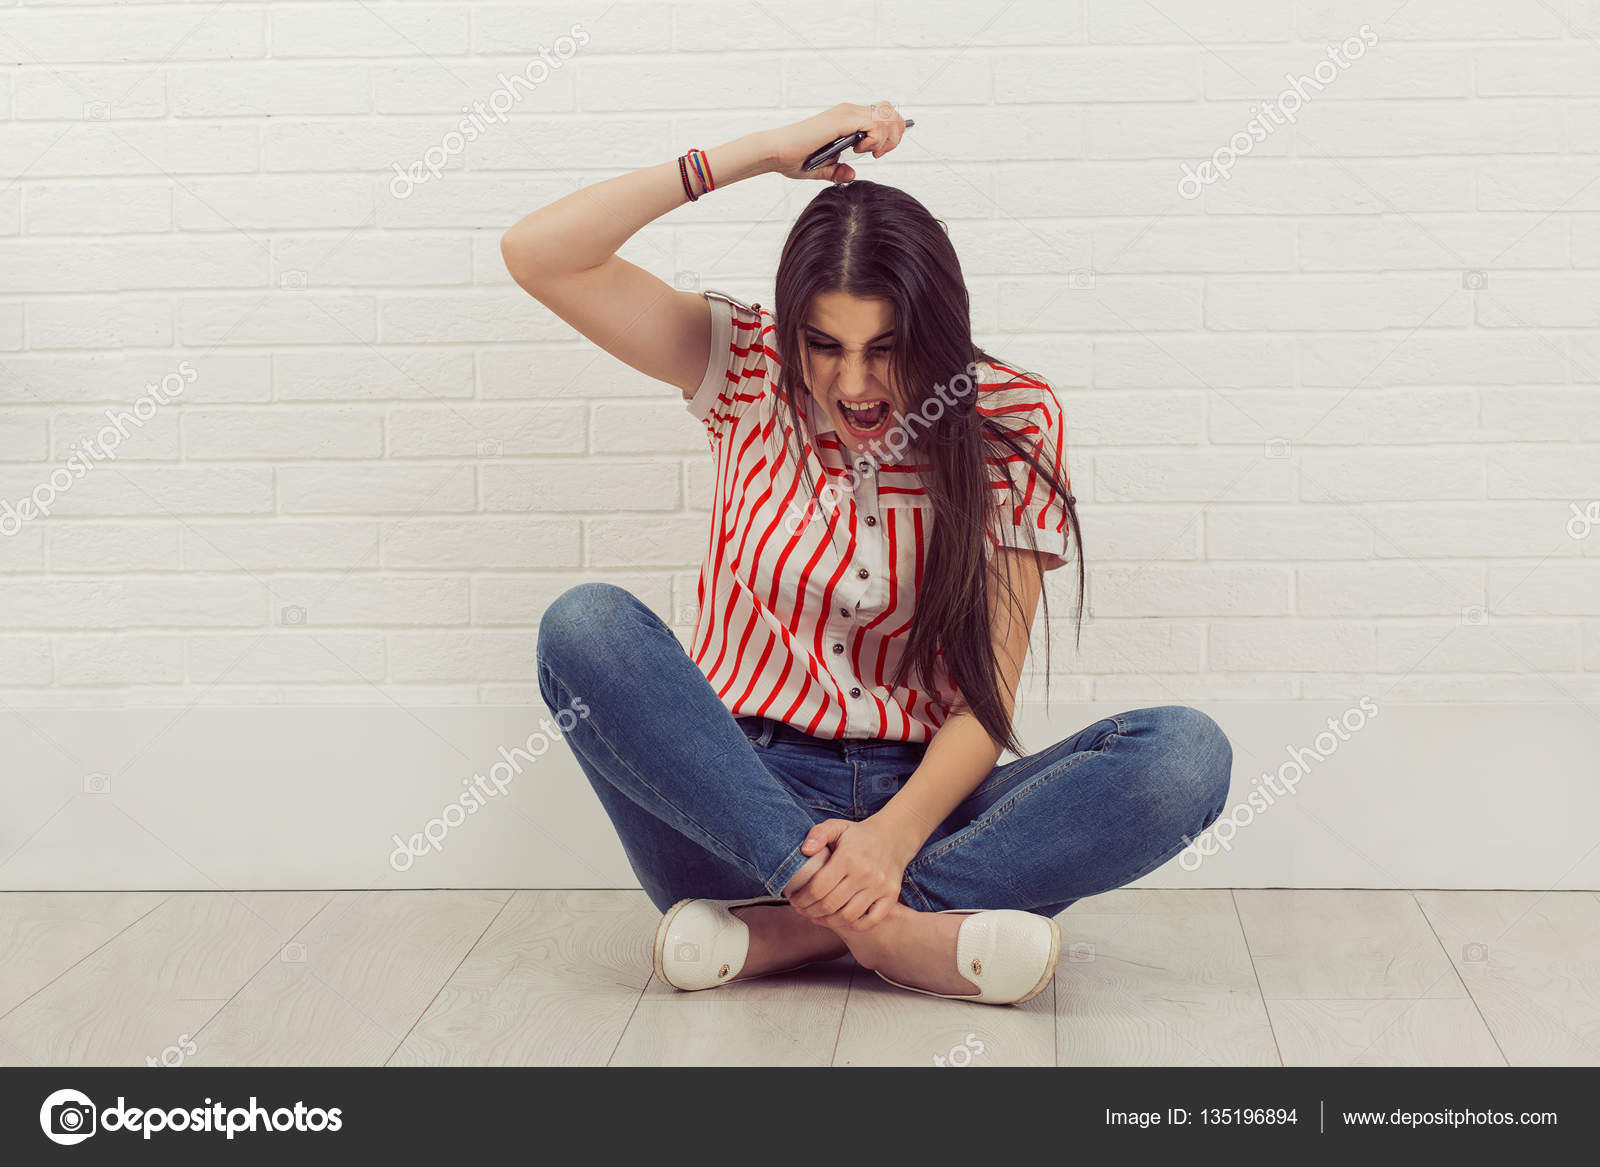 shawnee on delaware single girls Meet loads of available single women in mount pocono with mingle2's mount  pocono dating  mingle2 is full of hot mount pocono girls waiting to hear from  you.